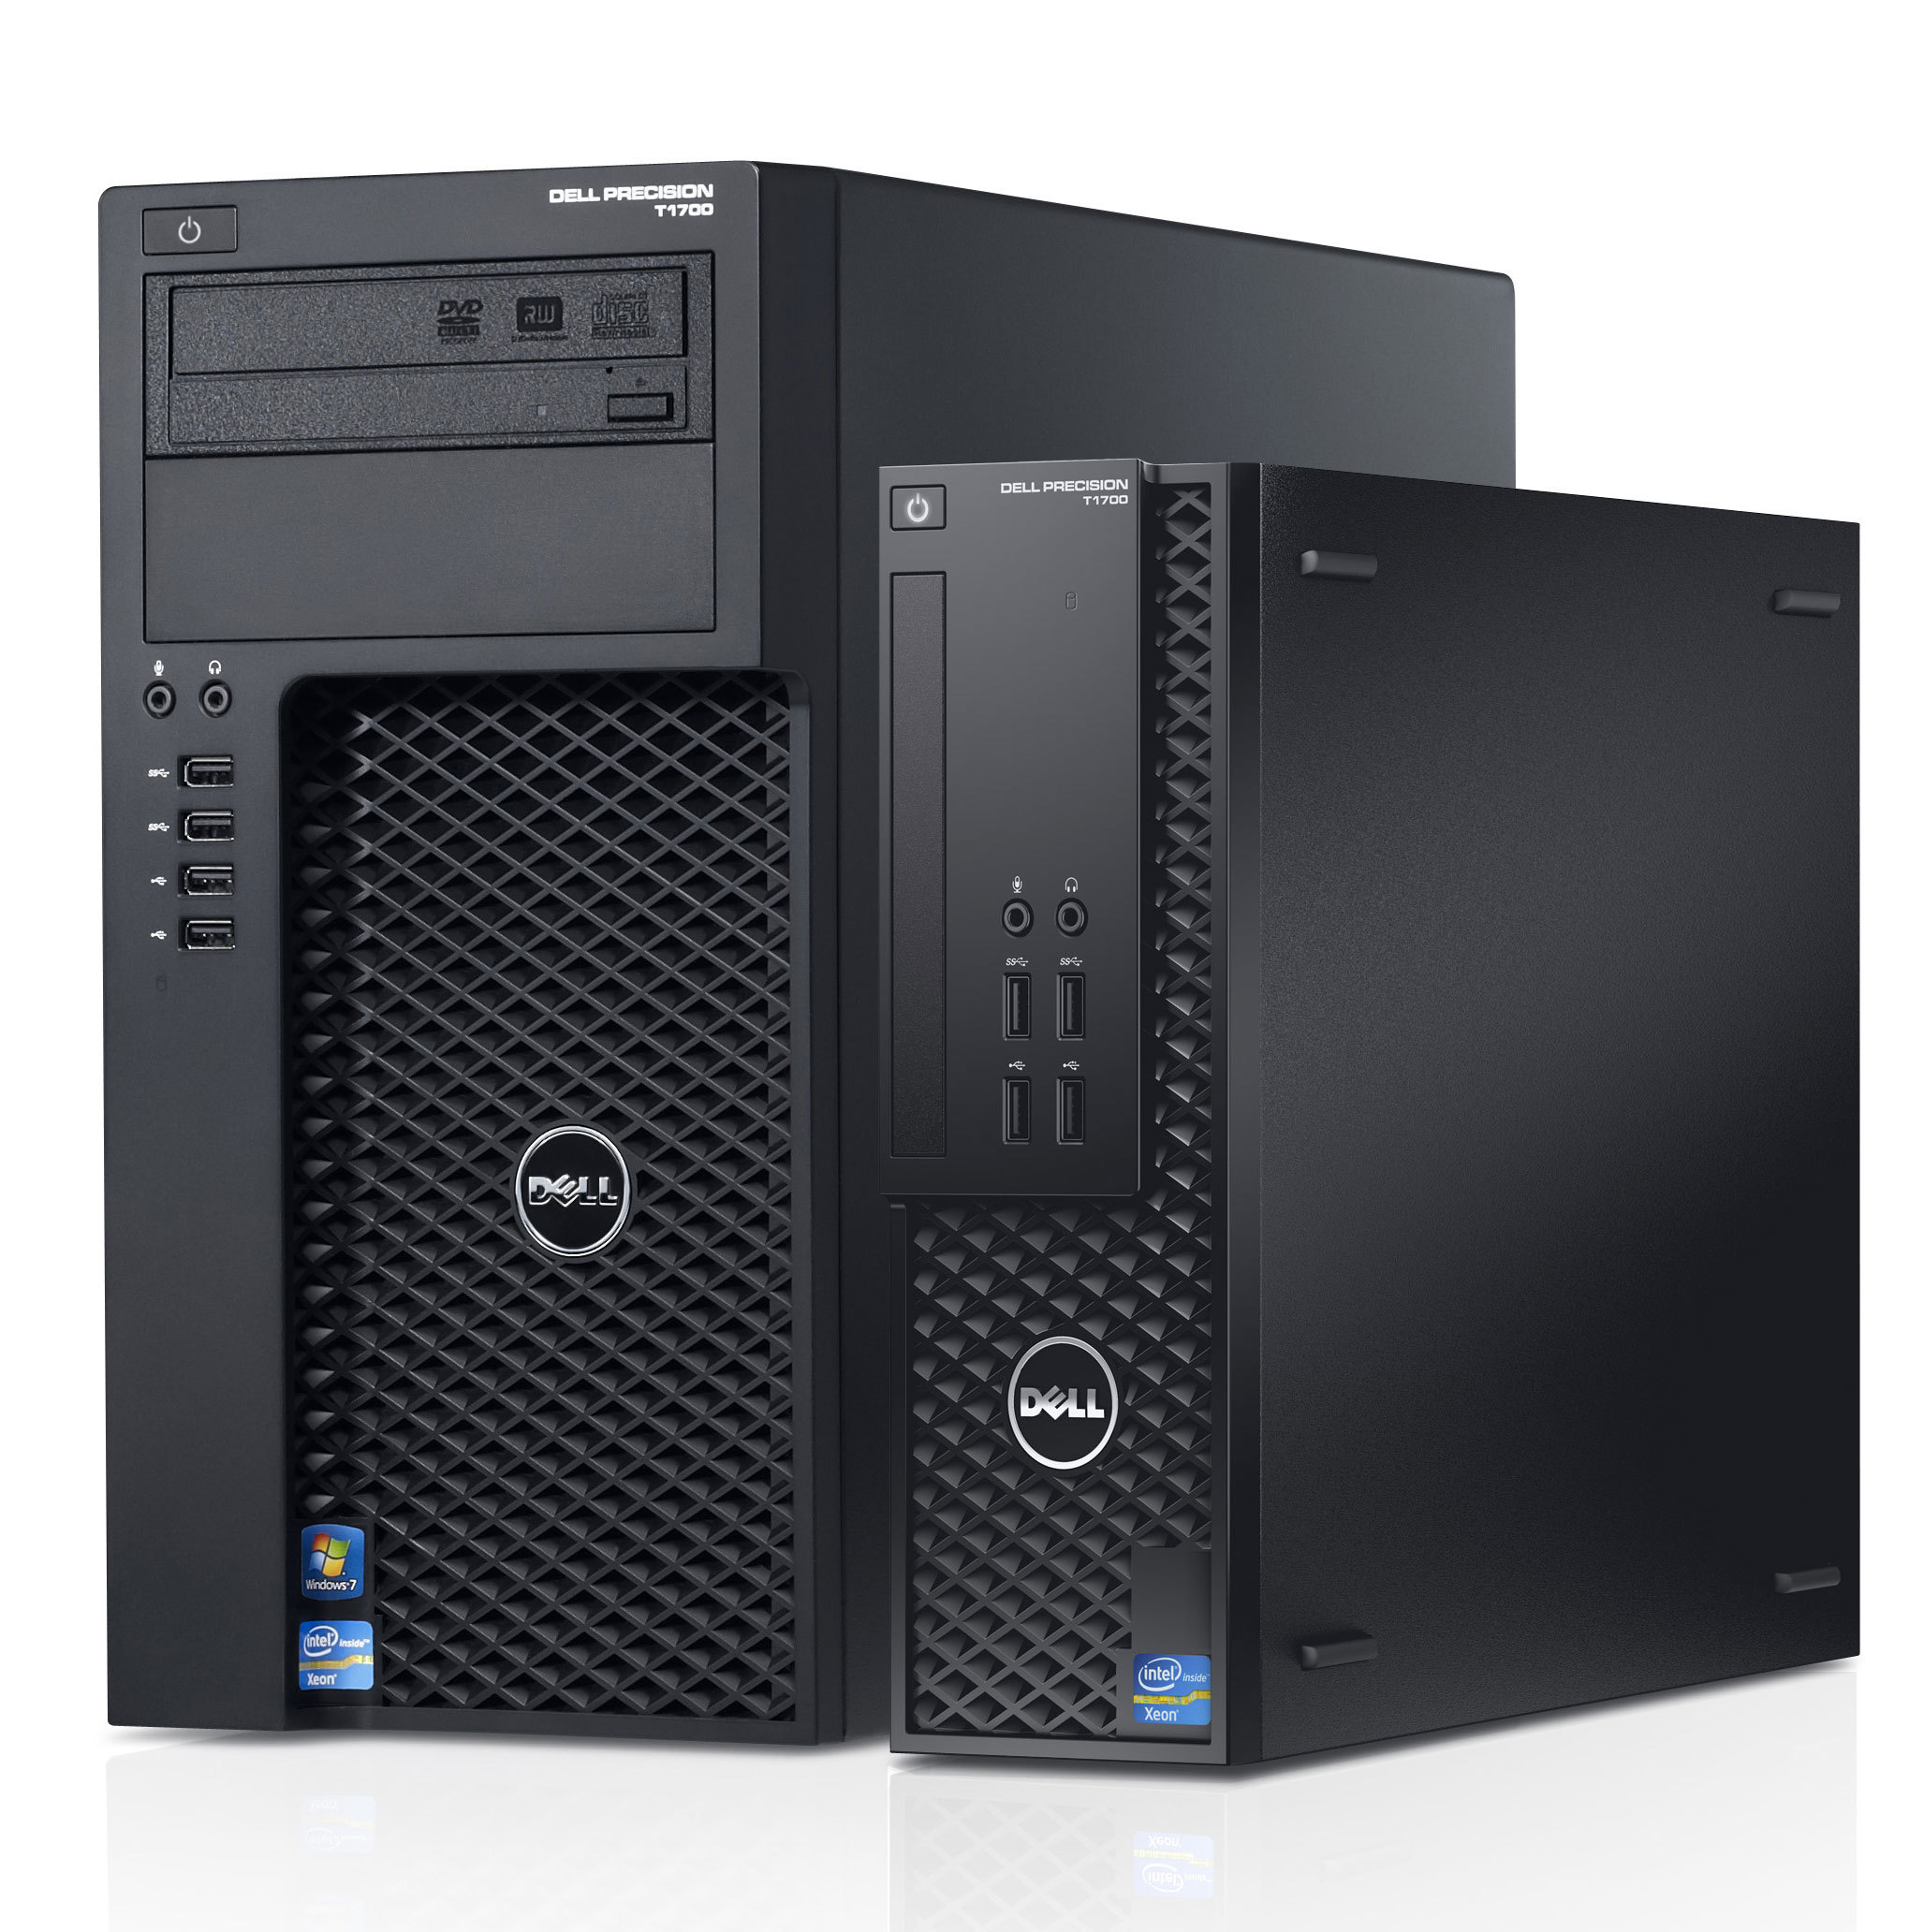 Offering powerful workstation performance at about desktop PC prices, the new Dell Precision T1700 Small Form-Factor and Mini-Tower are the smallest workstations in their class allowing IT to easily deploy an Independent Software Vendor (ISV) certified workstation almost anywhere, regardless of space constraints. (Photo: Business Wire)